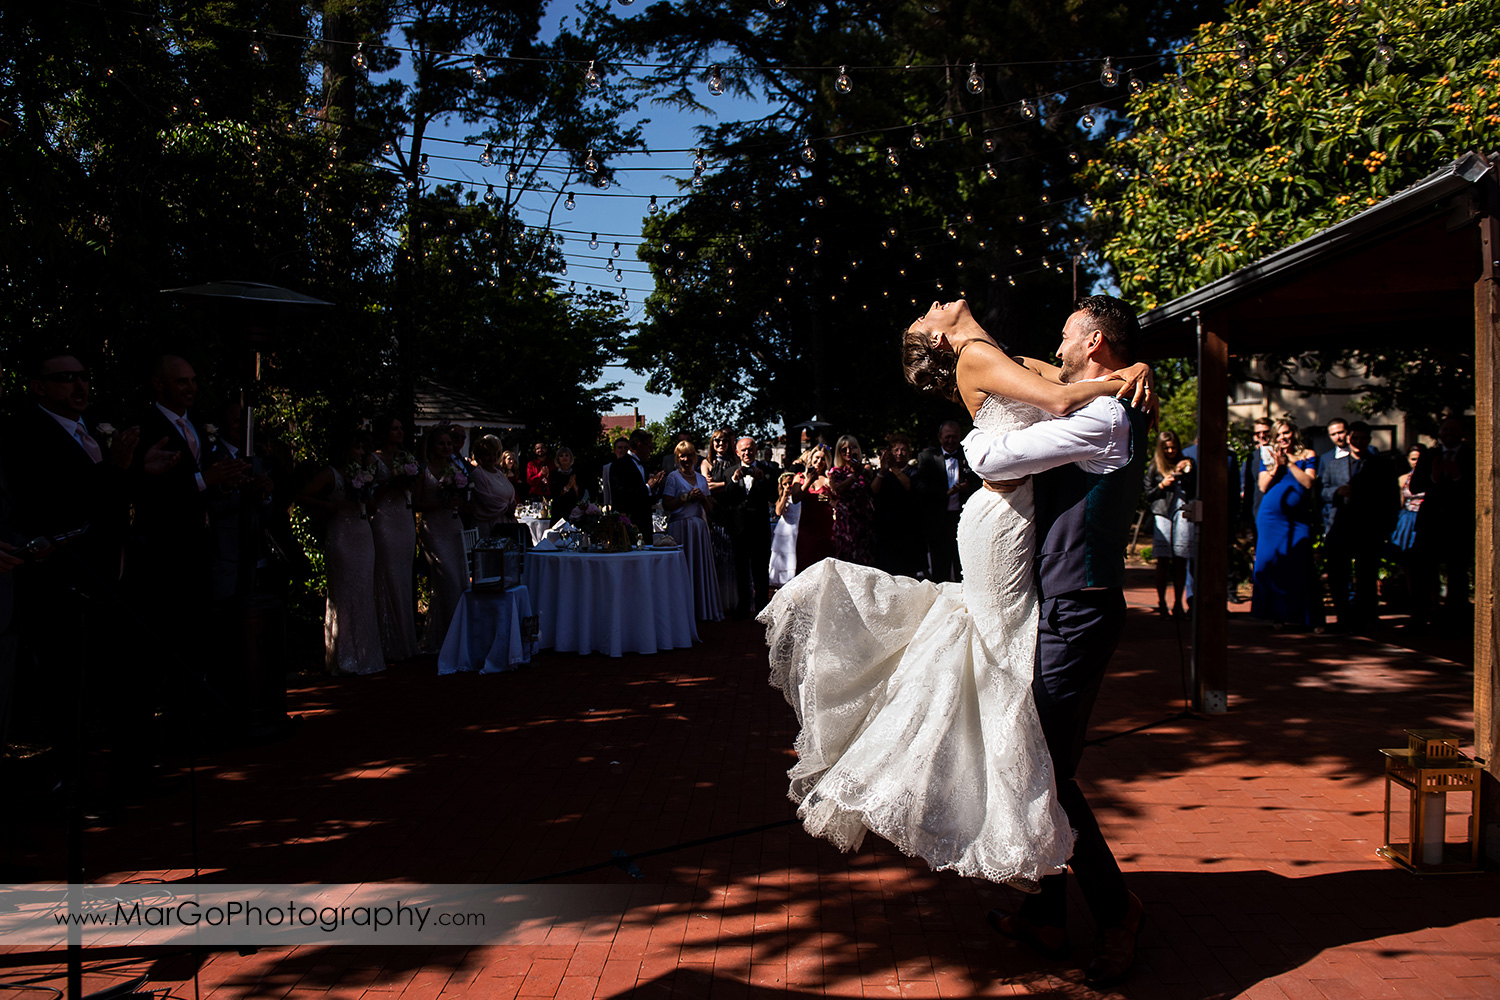 firts dance of bride and groom during wedding reception at San Pablo Rockefeller Lodge